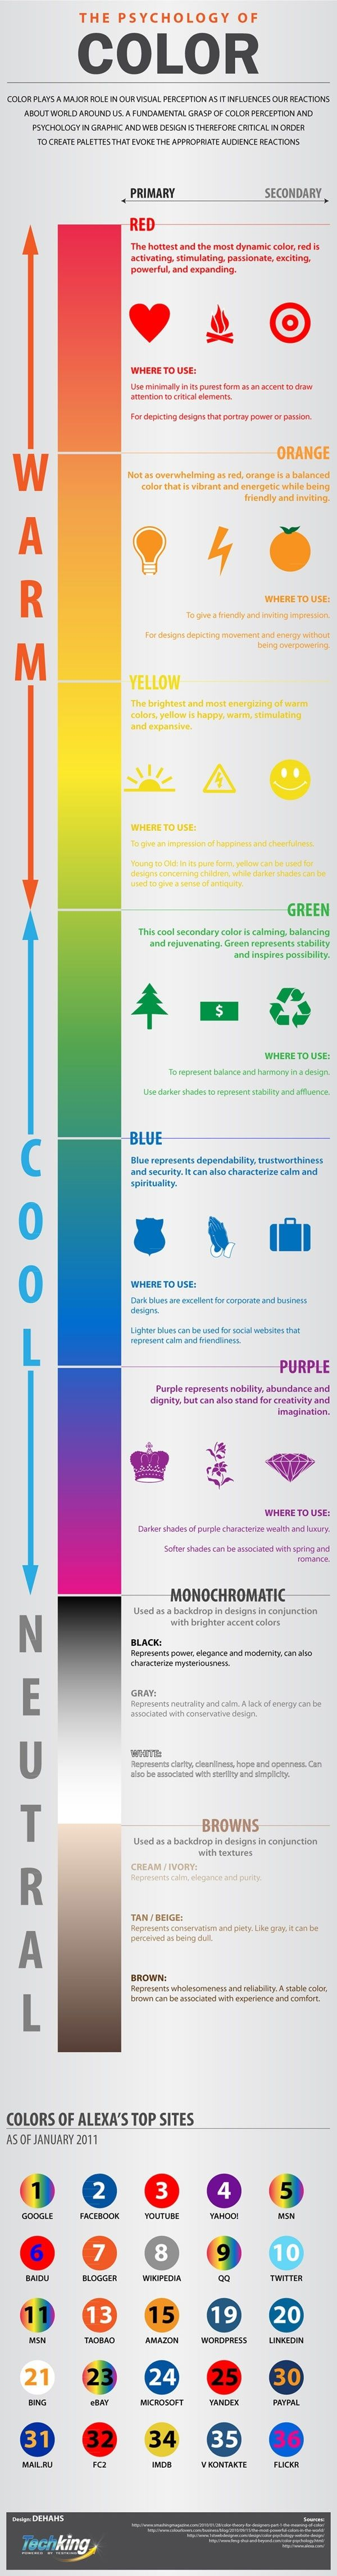 The psychology of color by frieda